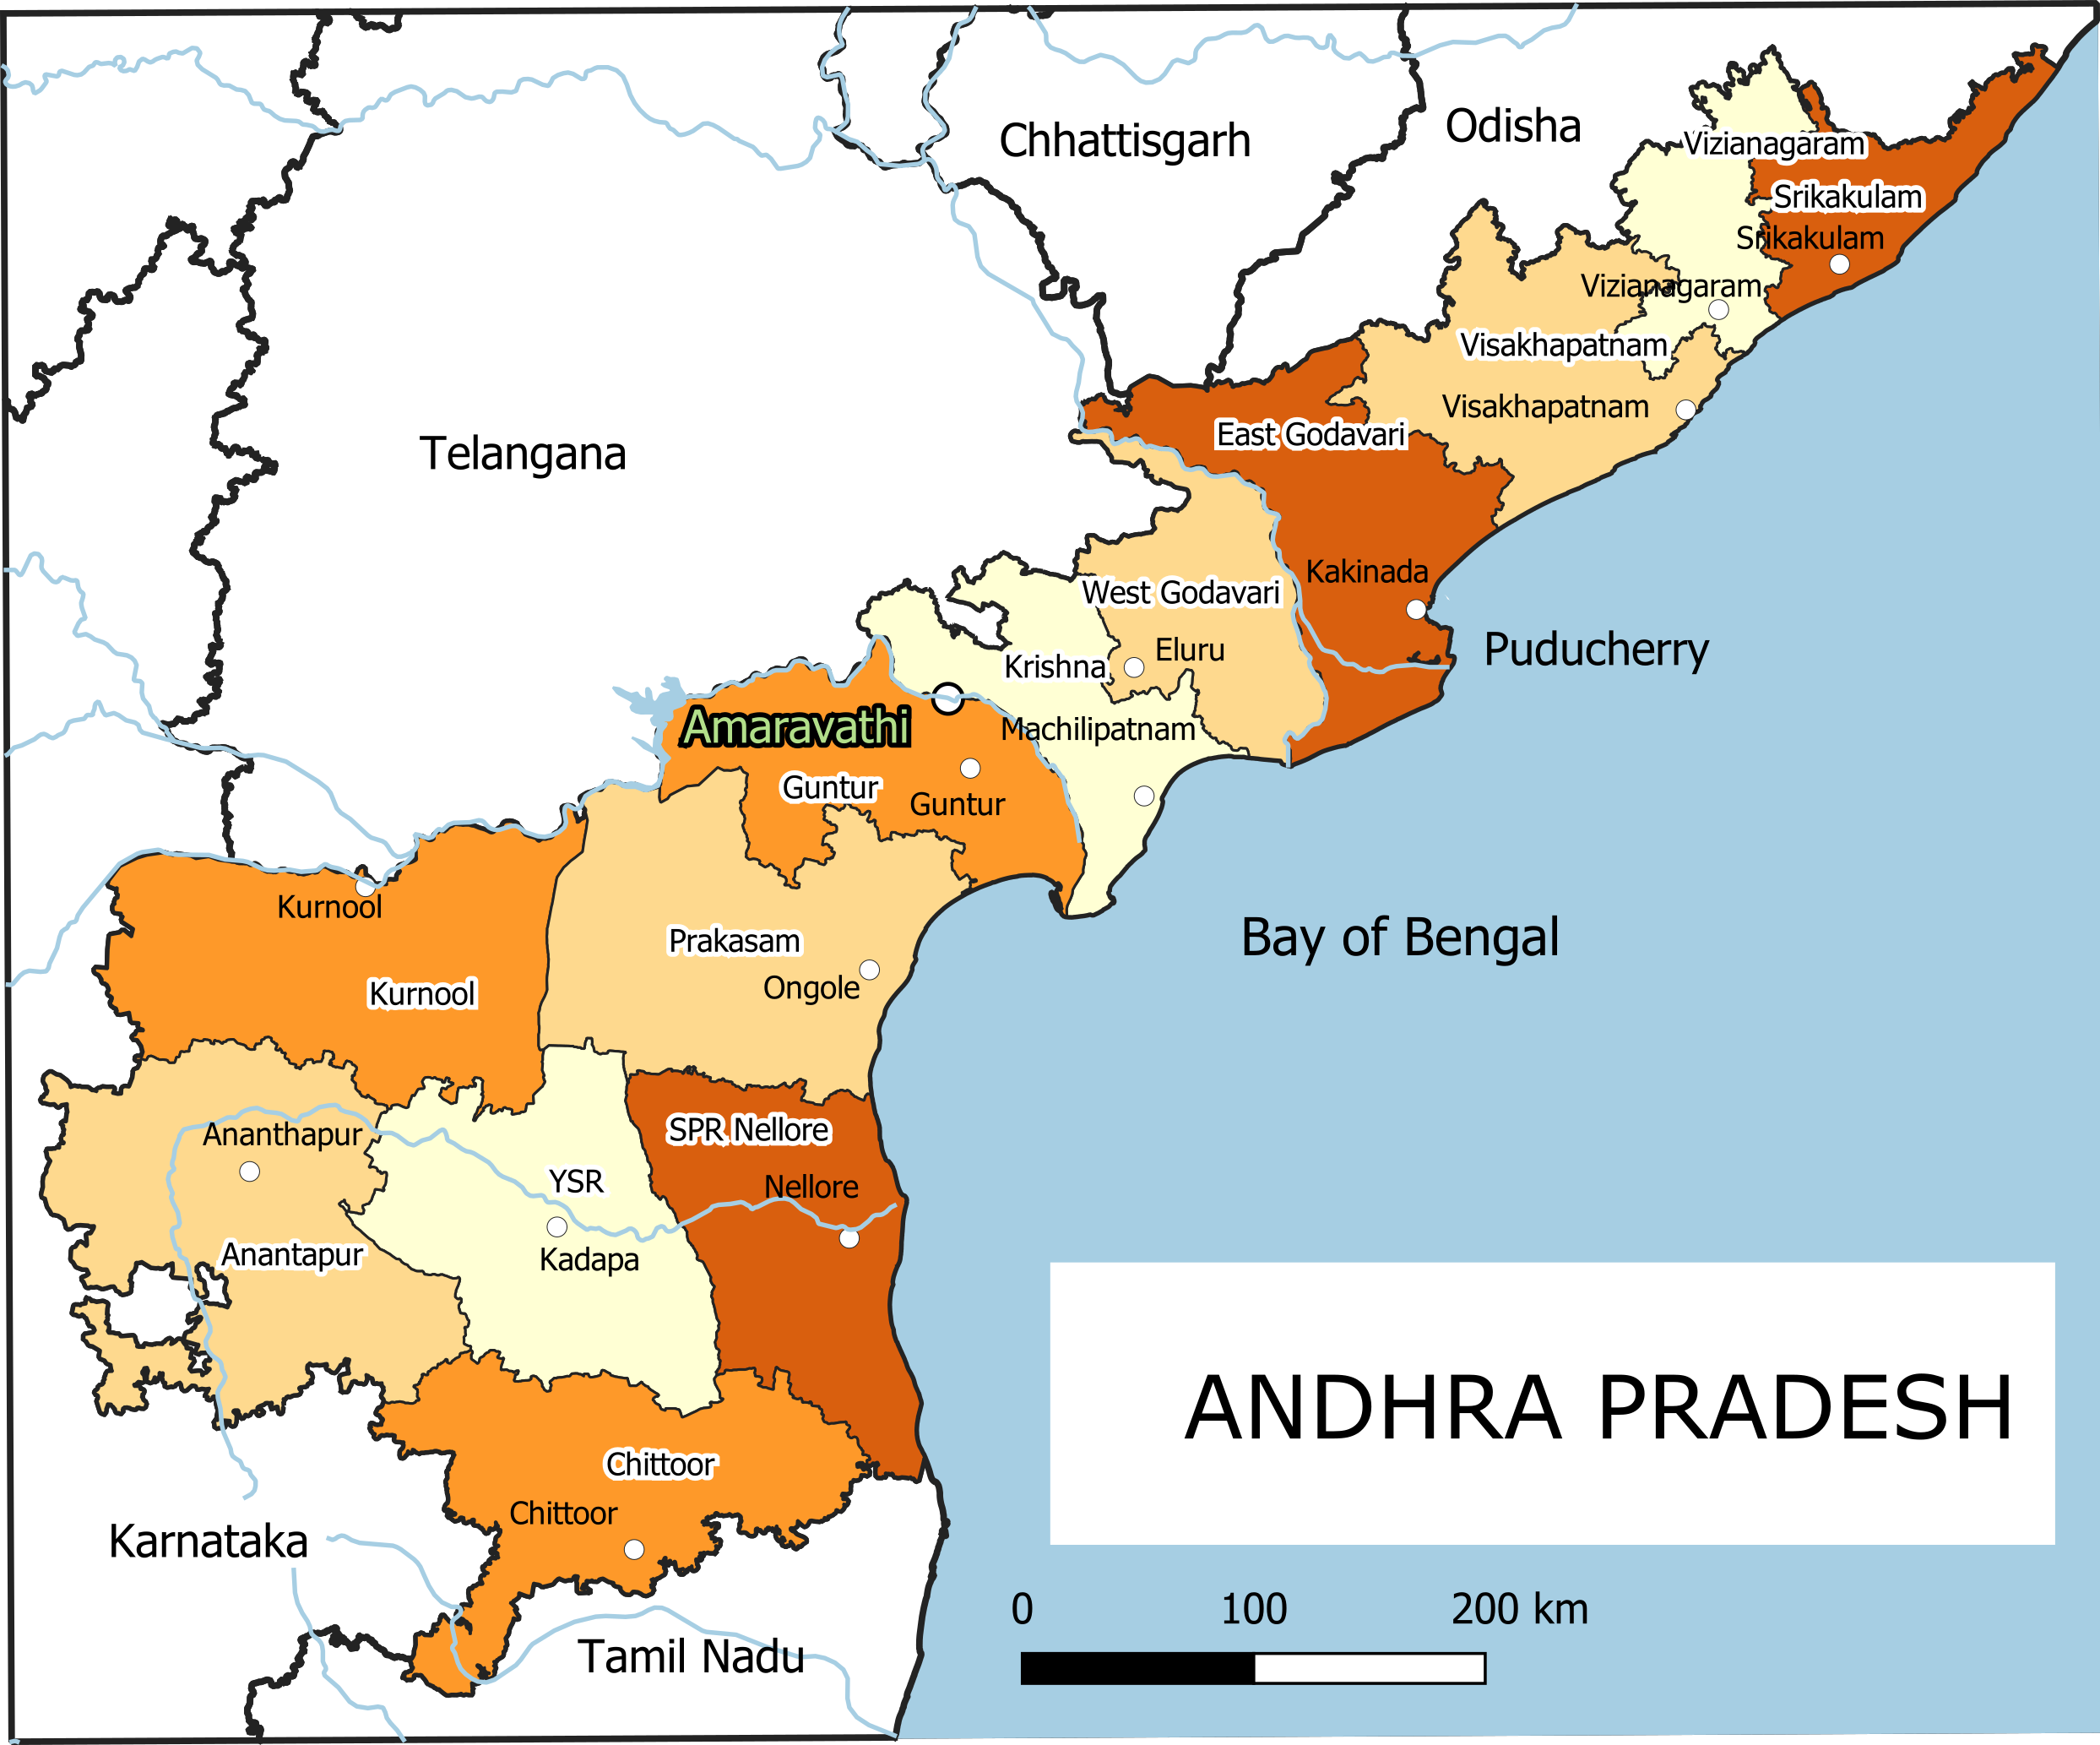 outline telangana andhra pradesh map List Of Districts Of Andhra Pradesh Wikipedia outline telangana andhra pradesh map